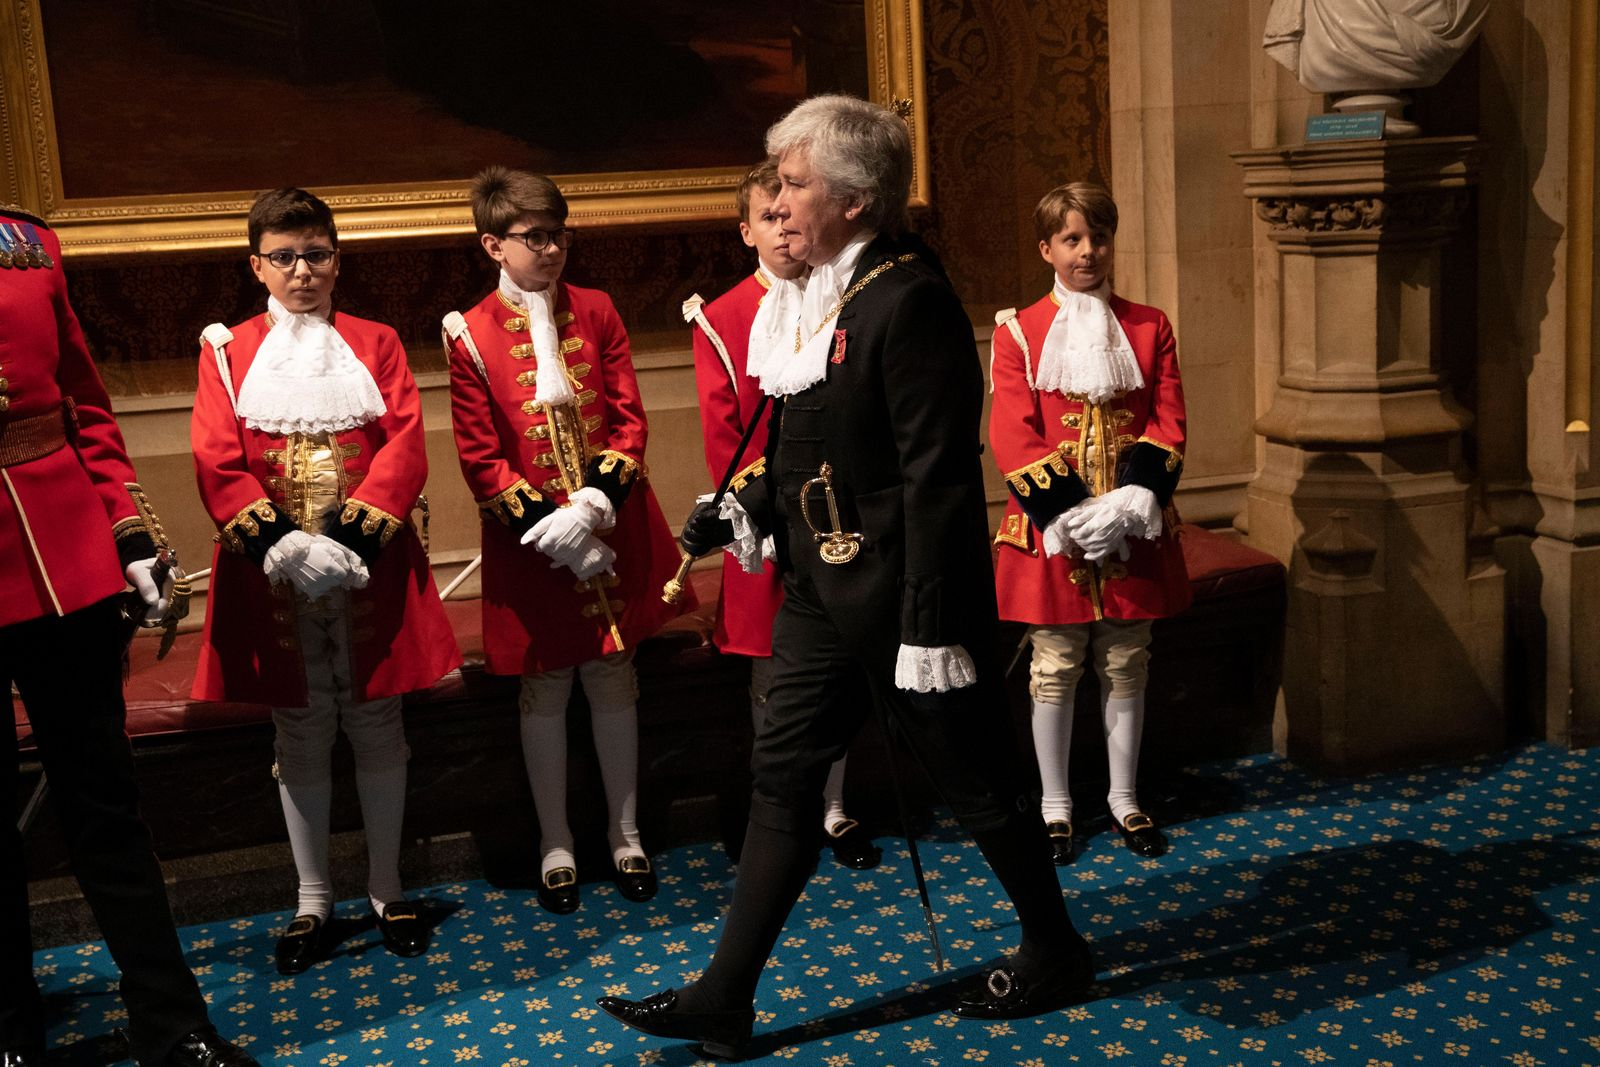 Black Rod, Sarah Clarke the first woman to serve in the role of Black Rod, walks past page boys in the Norman Porch at the Palace of Westminster and the Houses of Parliament for the State Opening of Parliament ceremony in London, Monday, Oct. 14, 2019. (AP Photo/Matt Dunham, Pool)